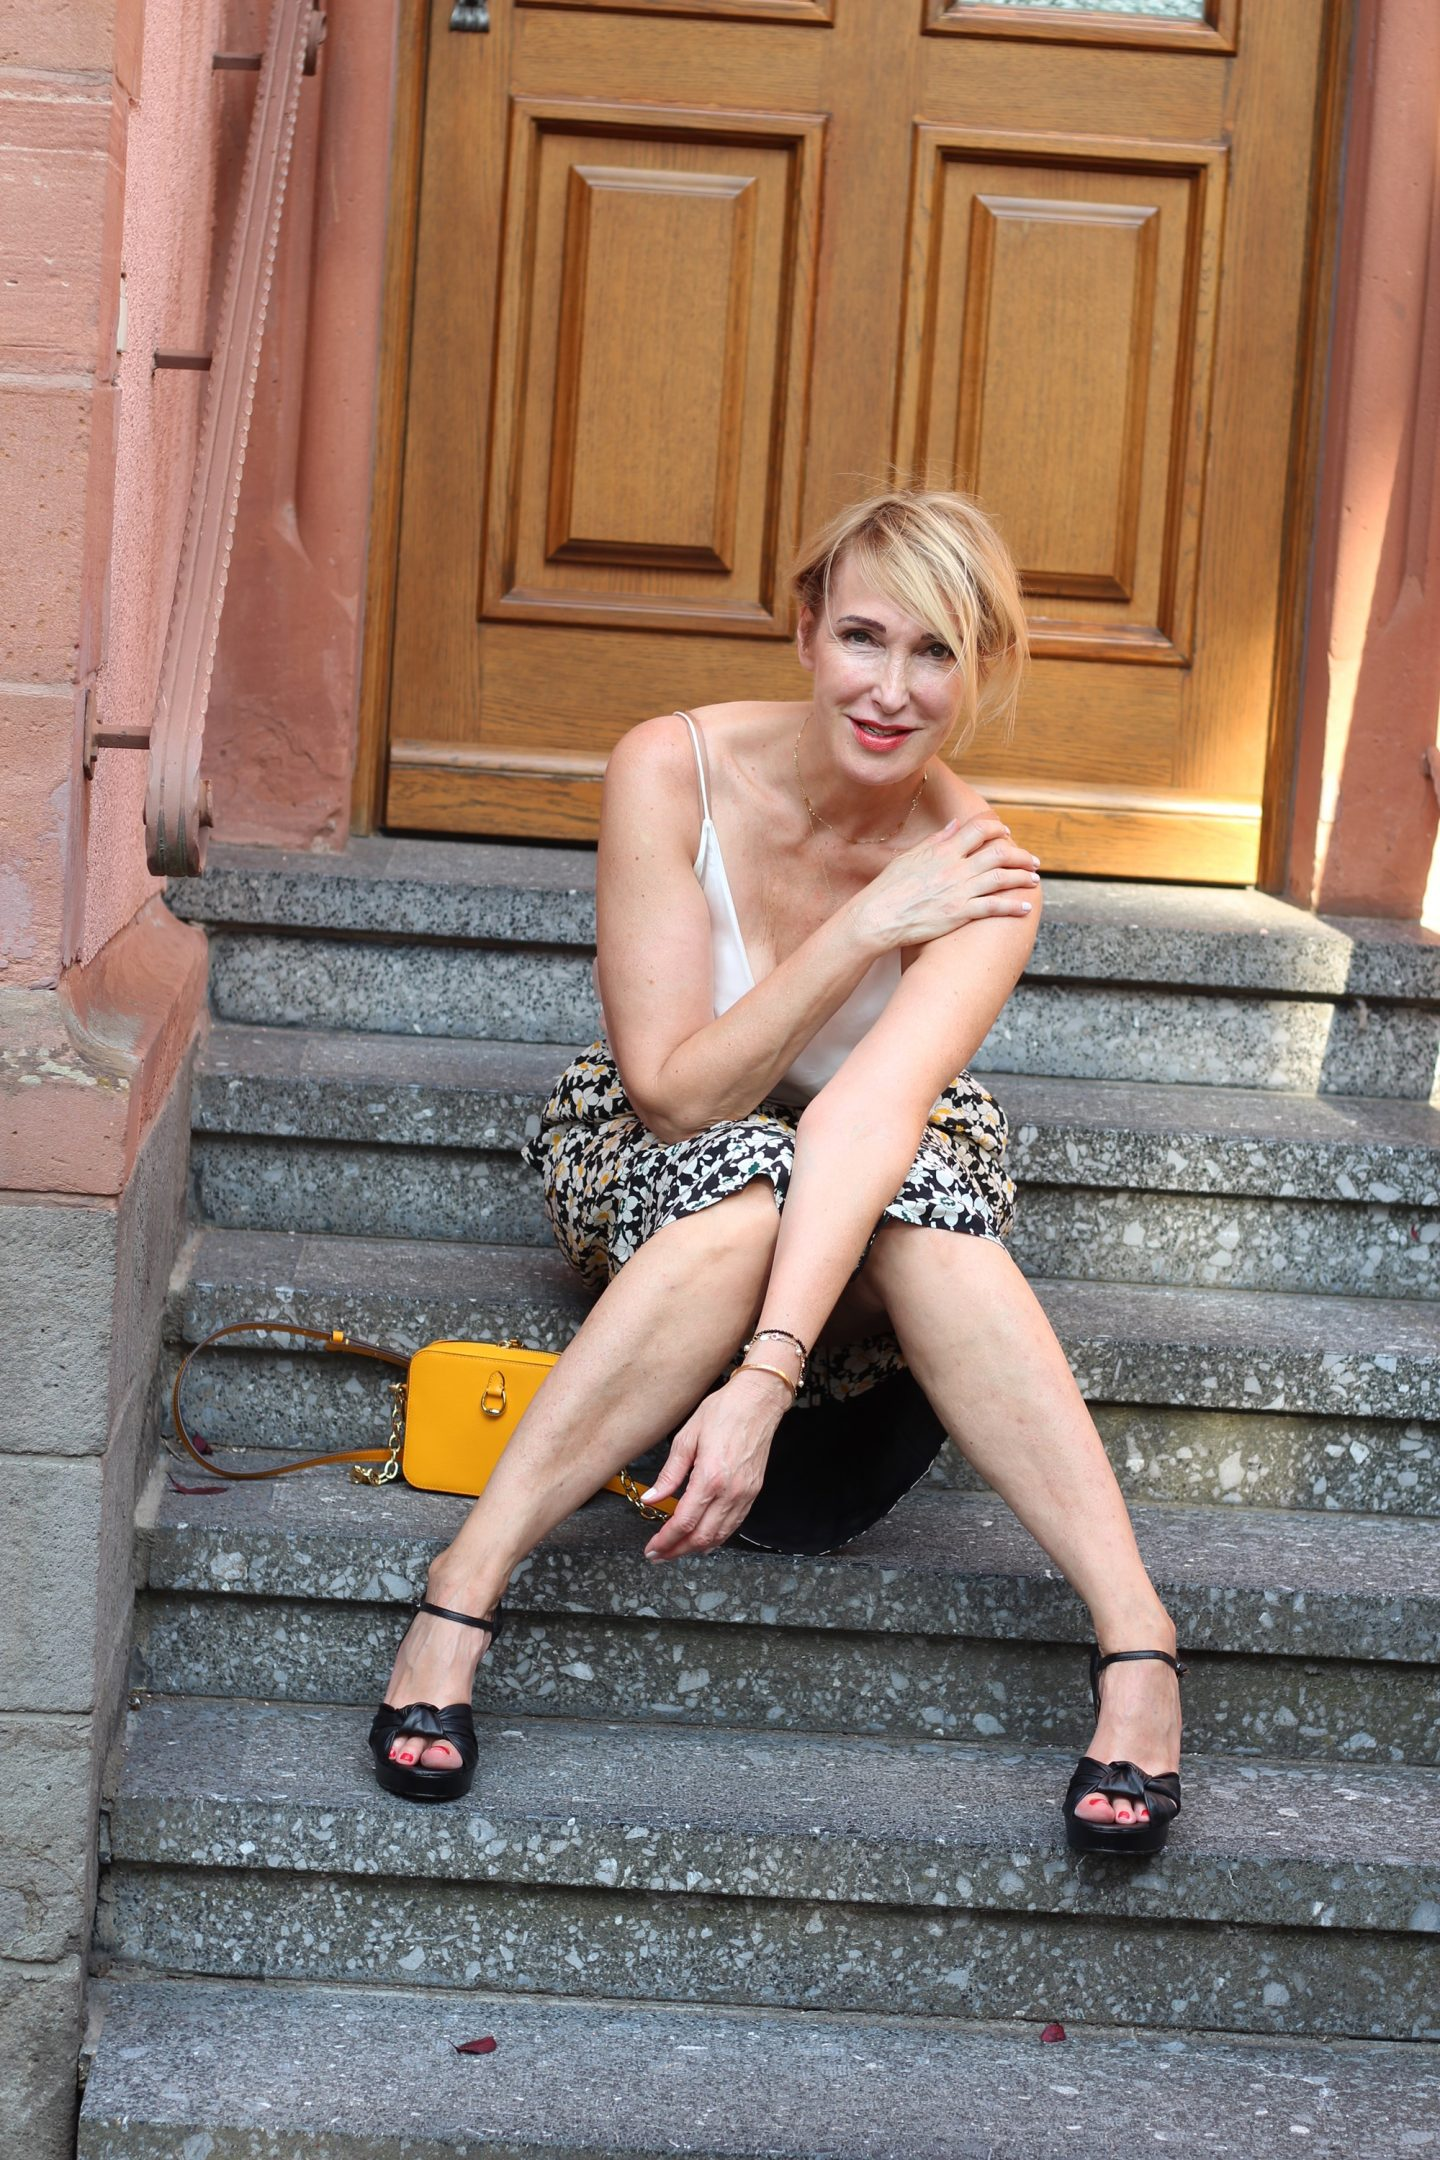 Büro-Outfits Glamupyourlifestyle Sommer-Look heiße-Tage Business-Outfit Hitze ü-40-blog ue-40-Blog